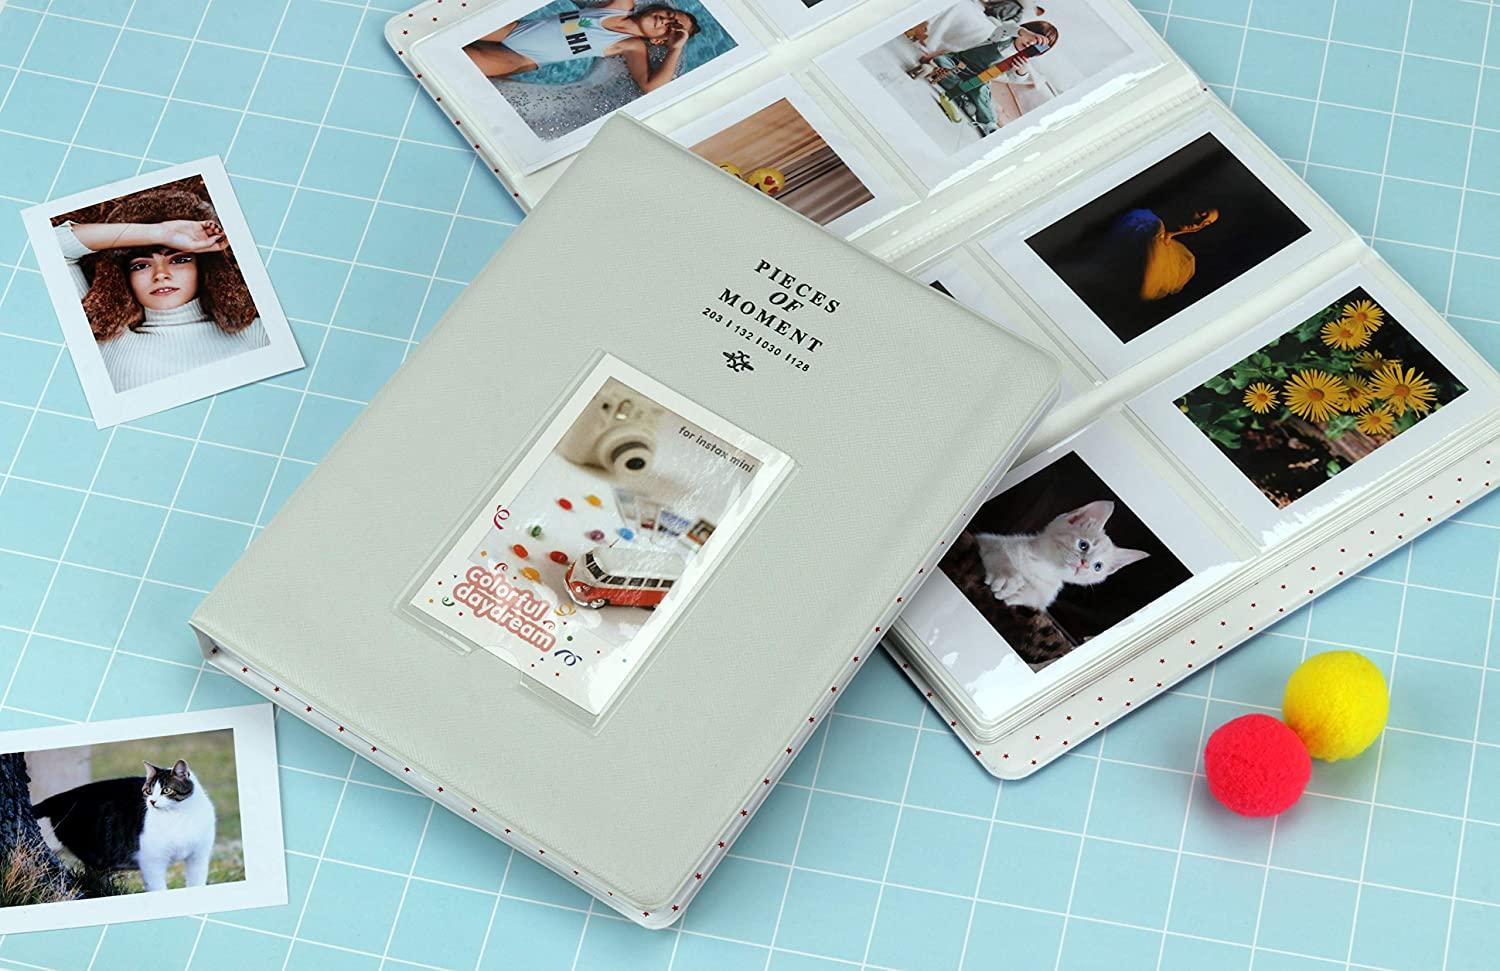 8 7s 25 26 50s 70 90 CELION 128 Pockets Photo Album for Fujifilm Instax Mini 11 9 8 Pink